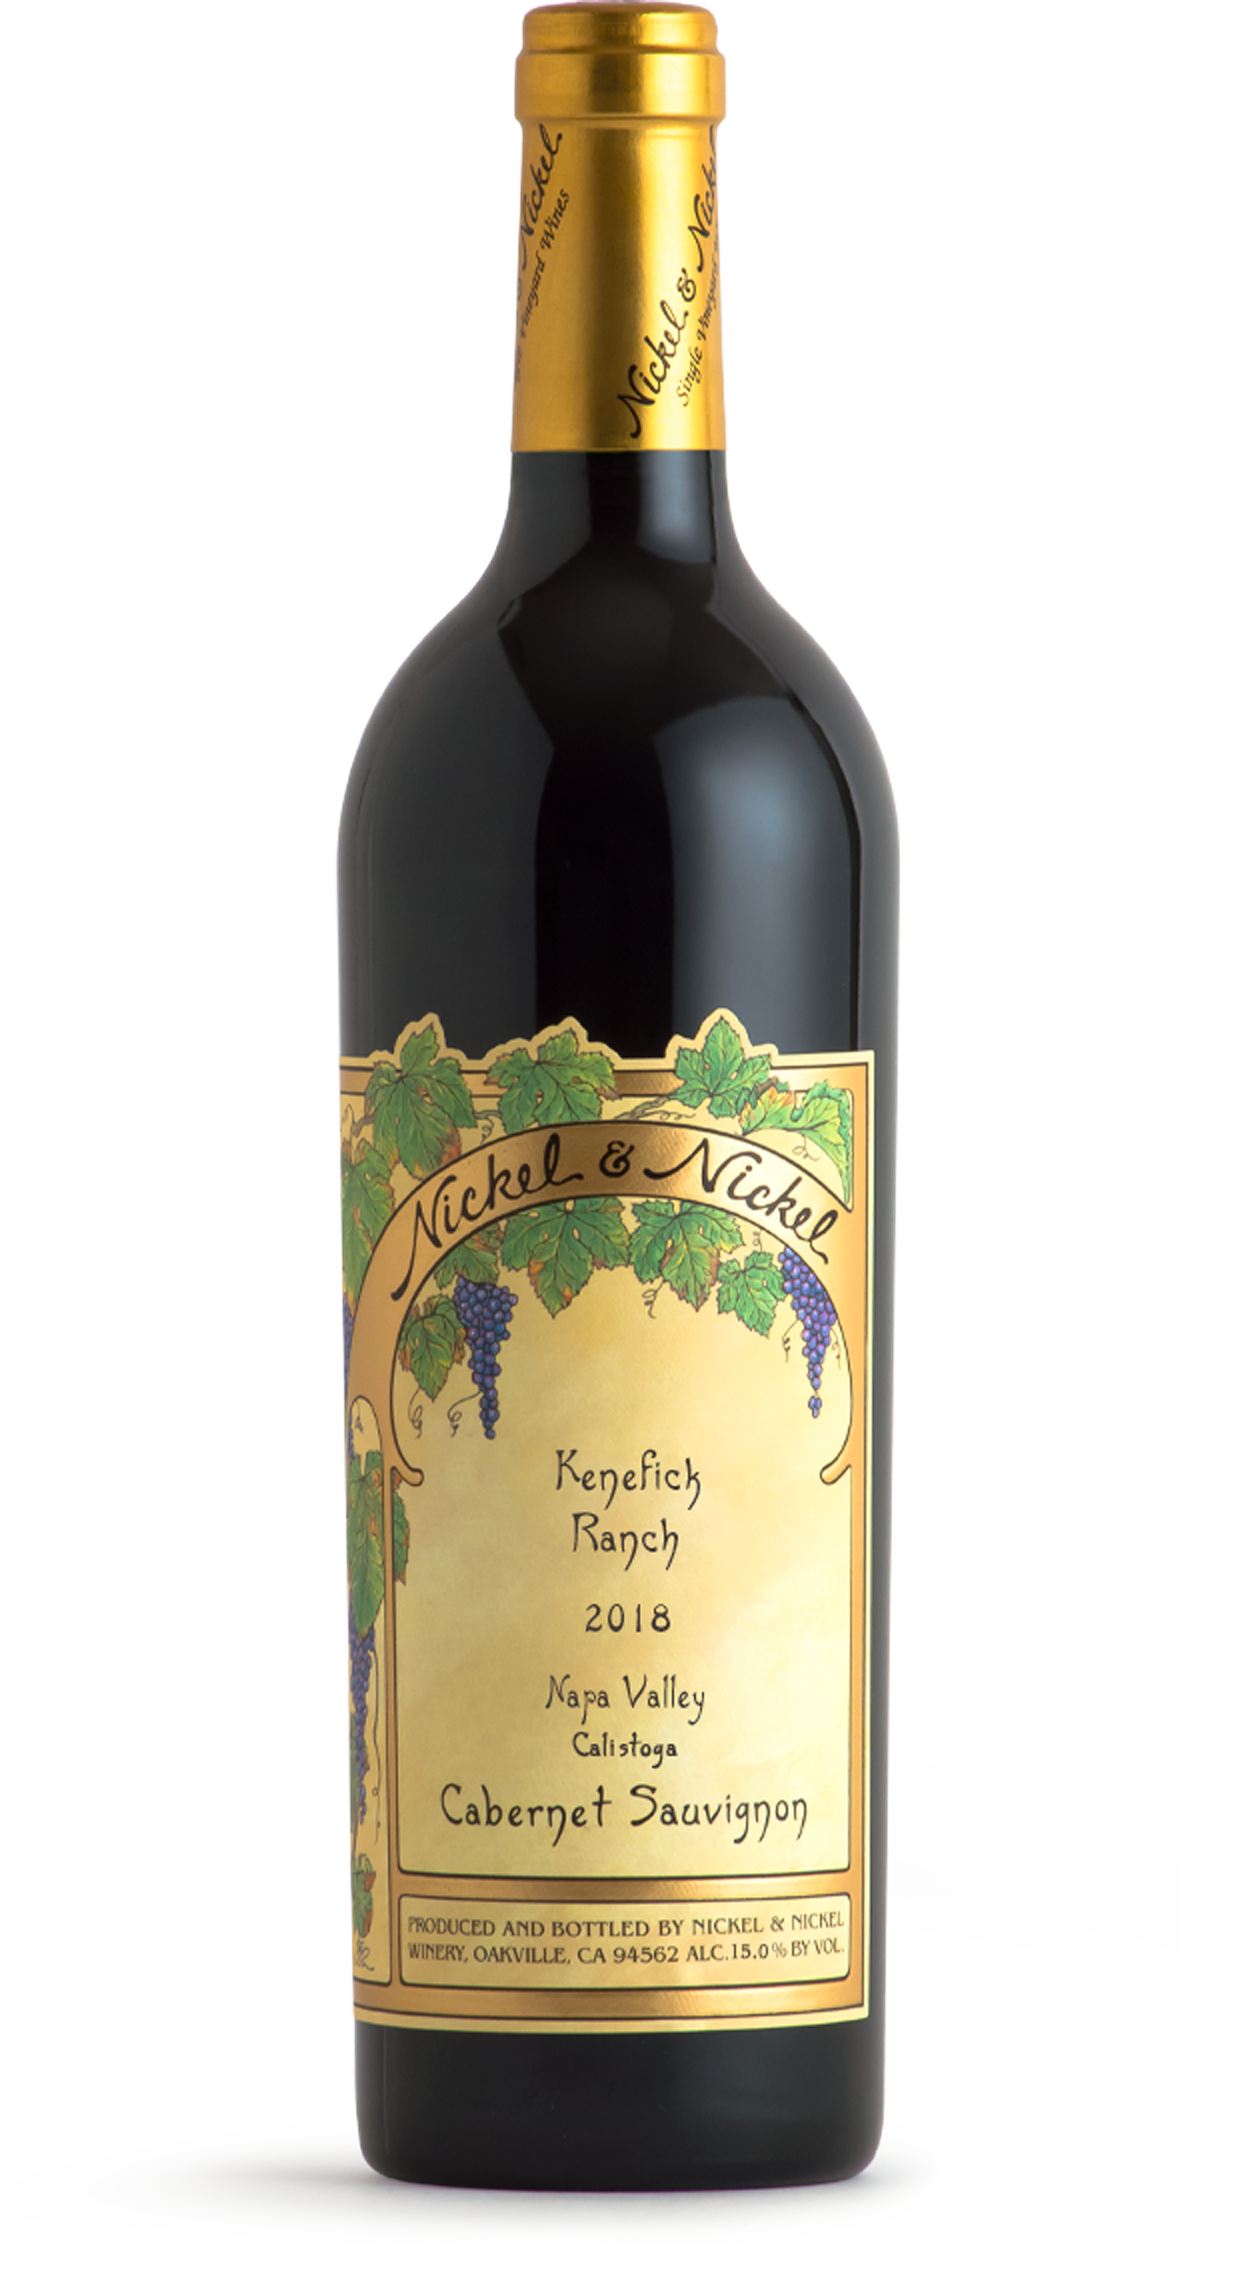 2018 Nickel & Nickel Kenefick Ranch Cabernet Sauvignon, Calistoga